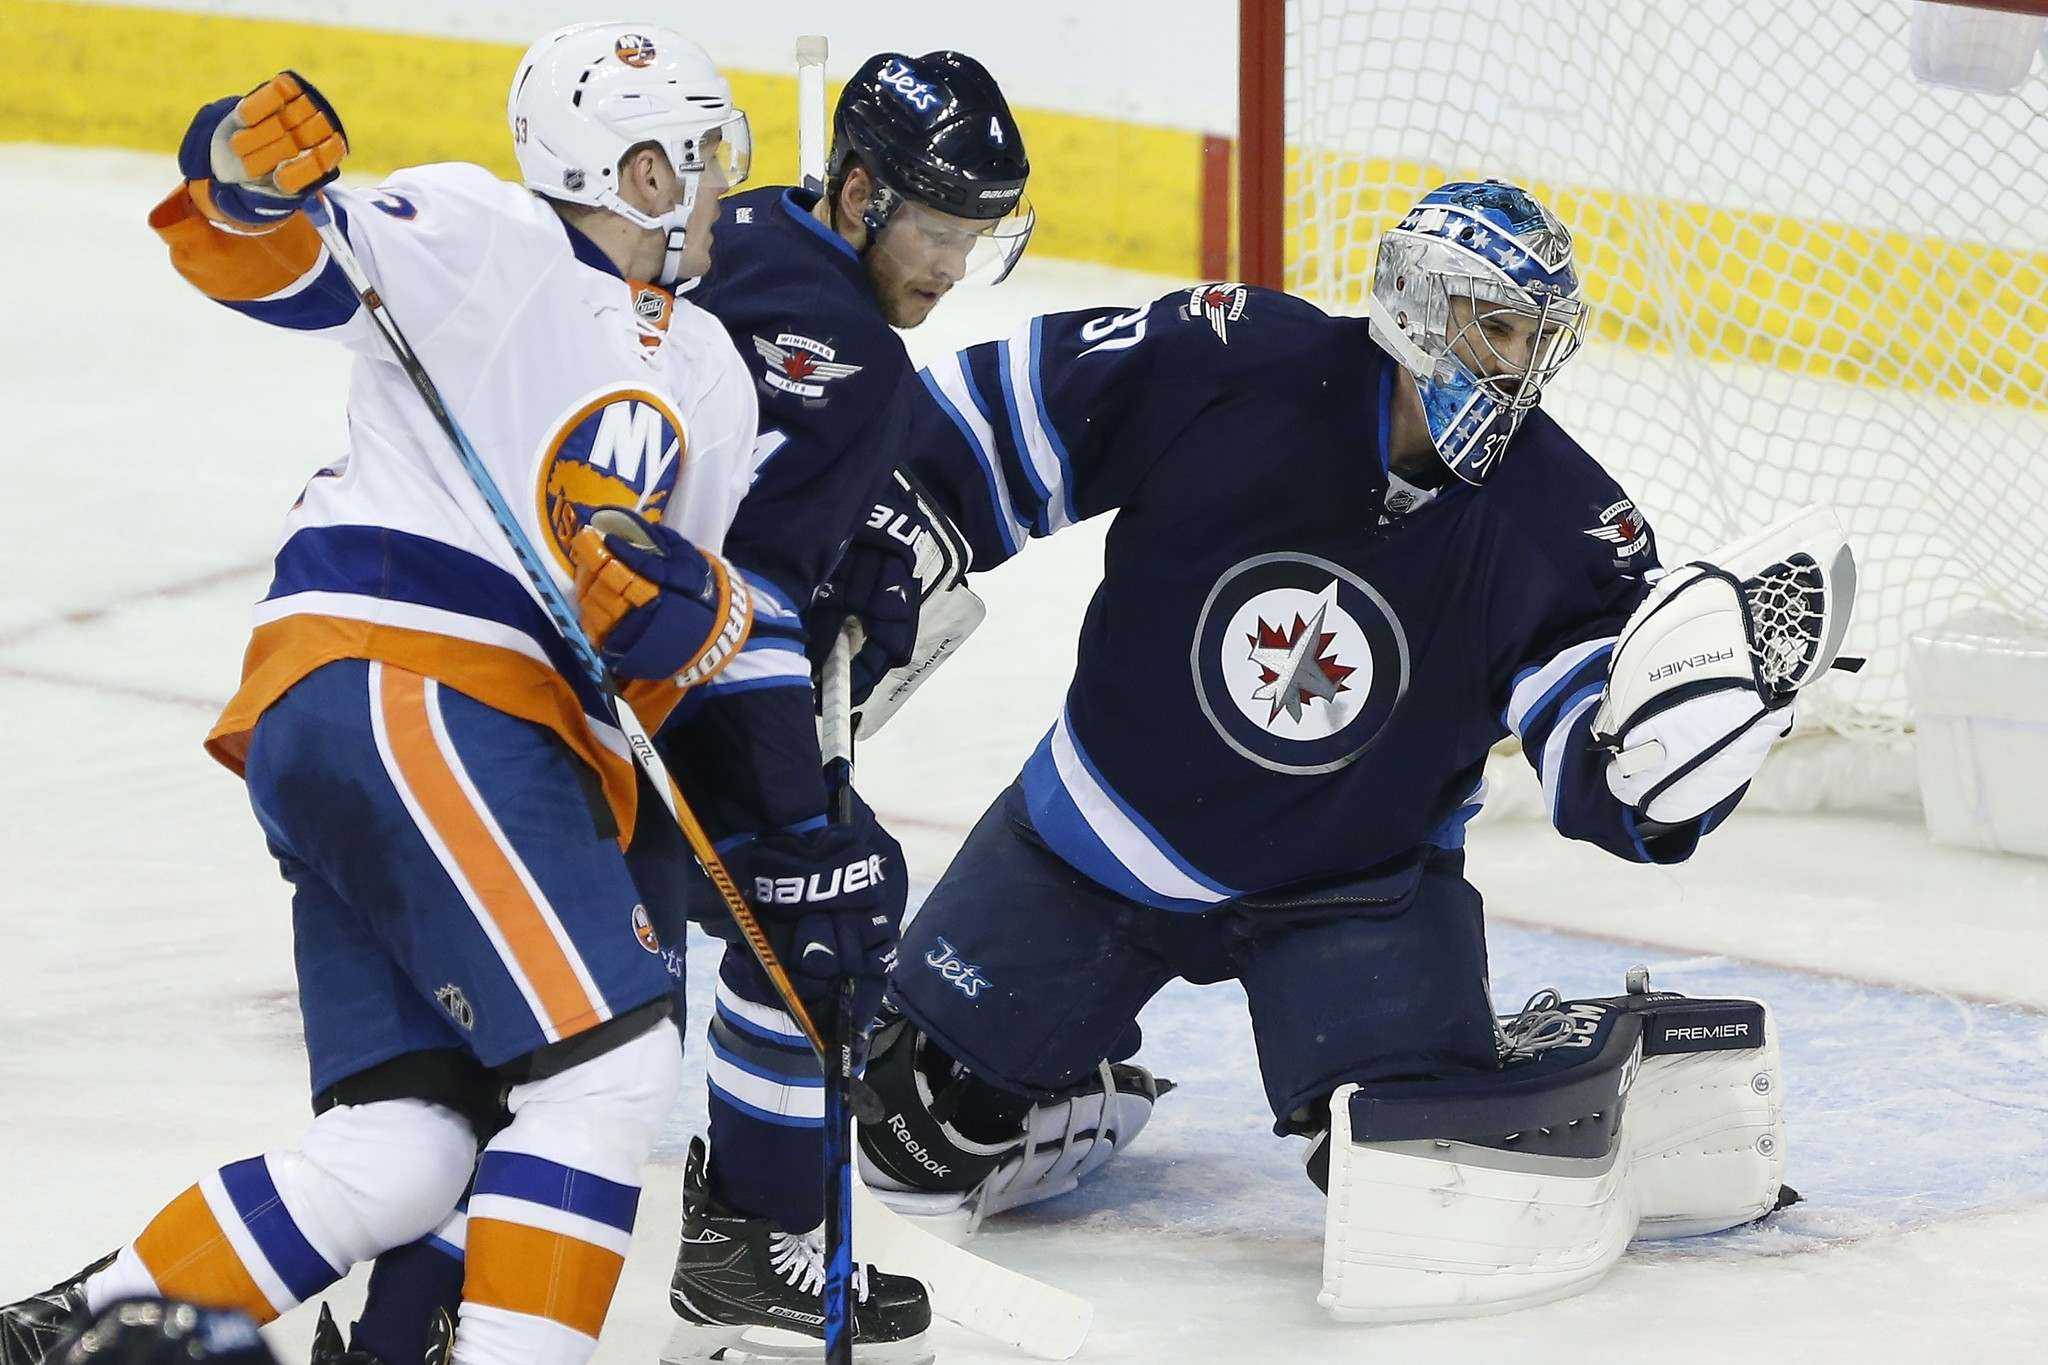 finest selection 261ac 3b9a0 Jets cap 2016 with 6-2 loss to Islanders - Winnipeg Free Press